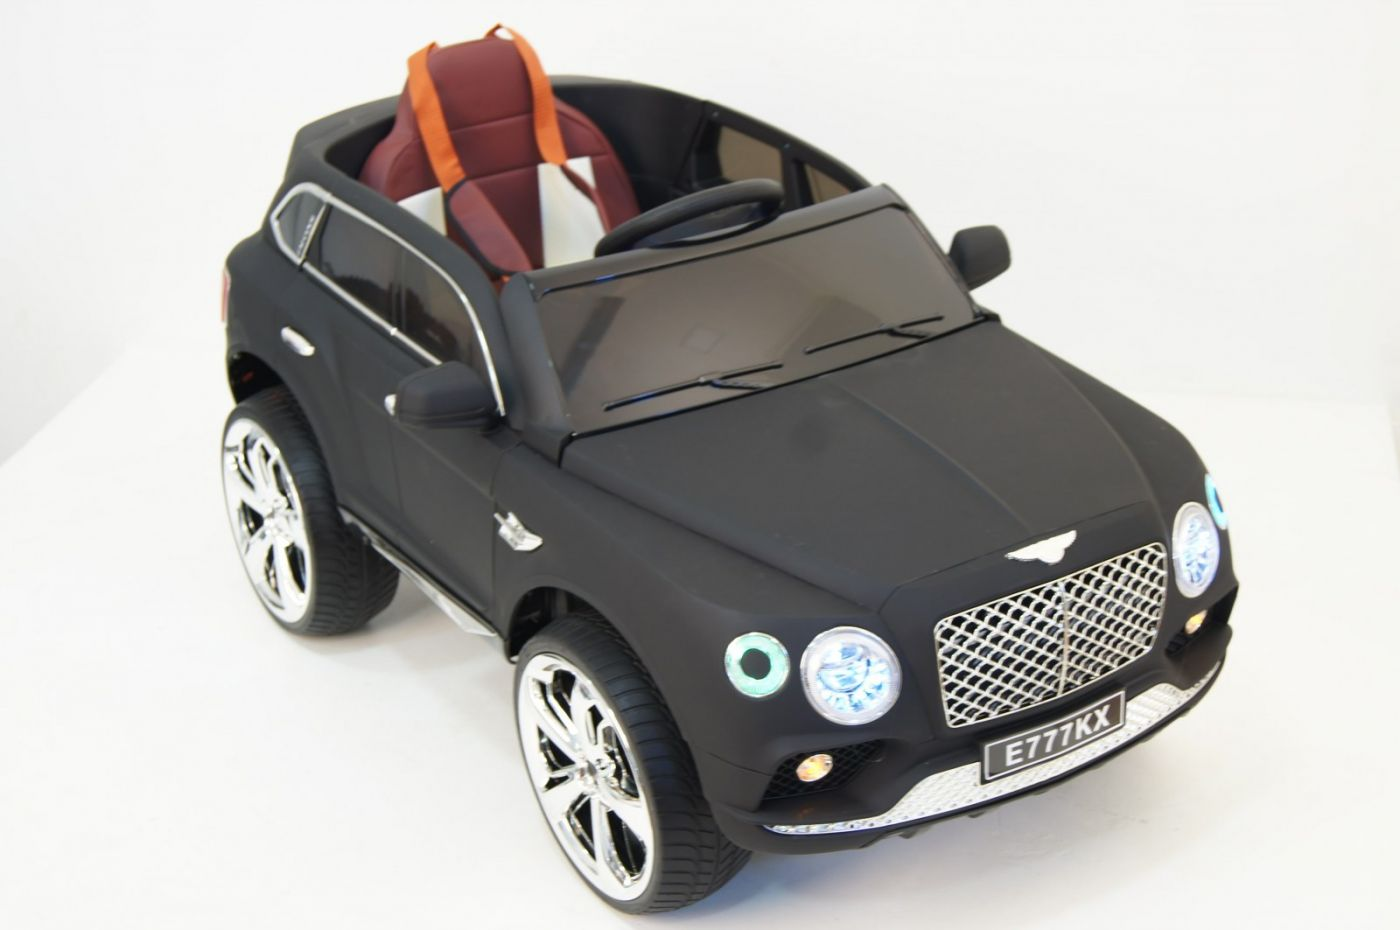 RiverToys автомобиль BENTLEY E777KX